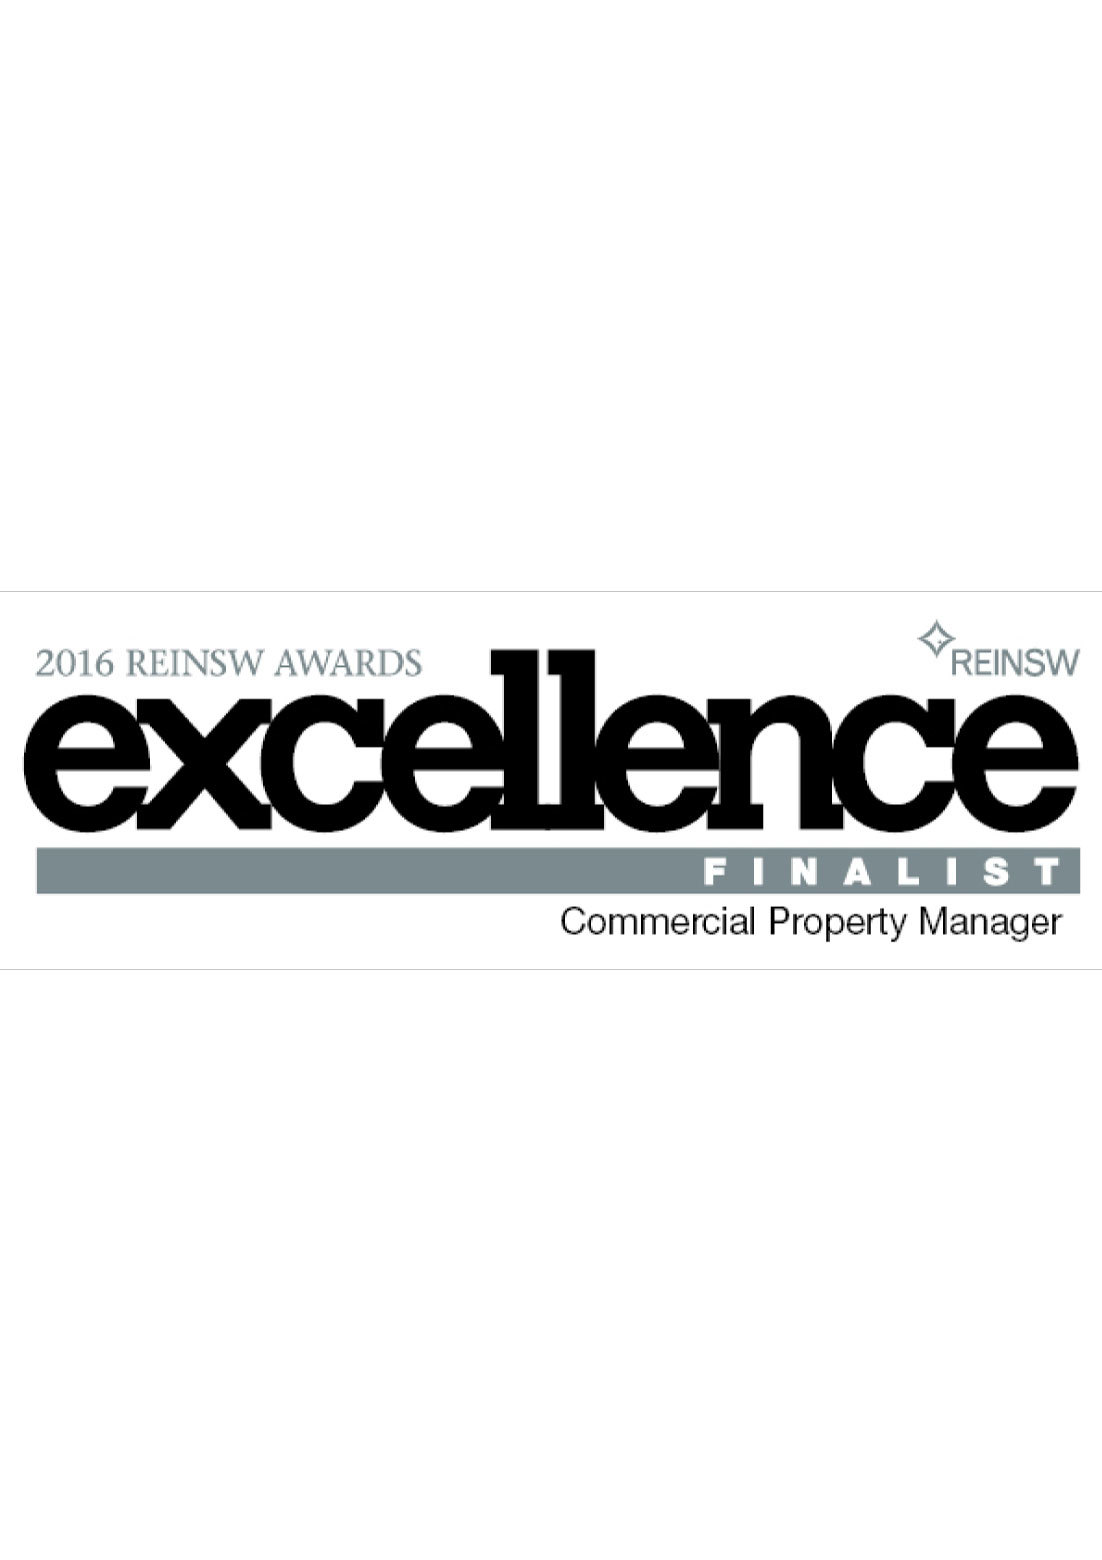 REINSW Commercial Property Manager Finalist